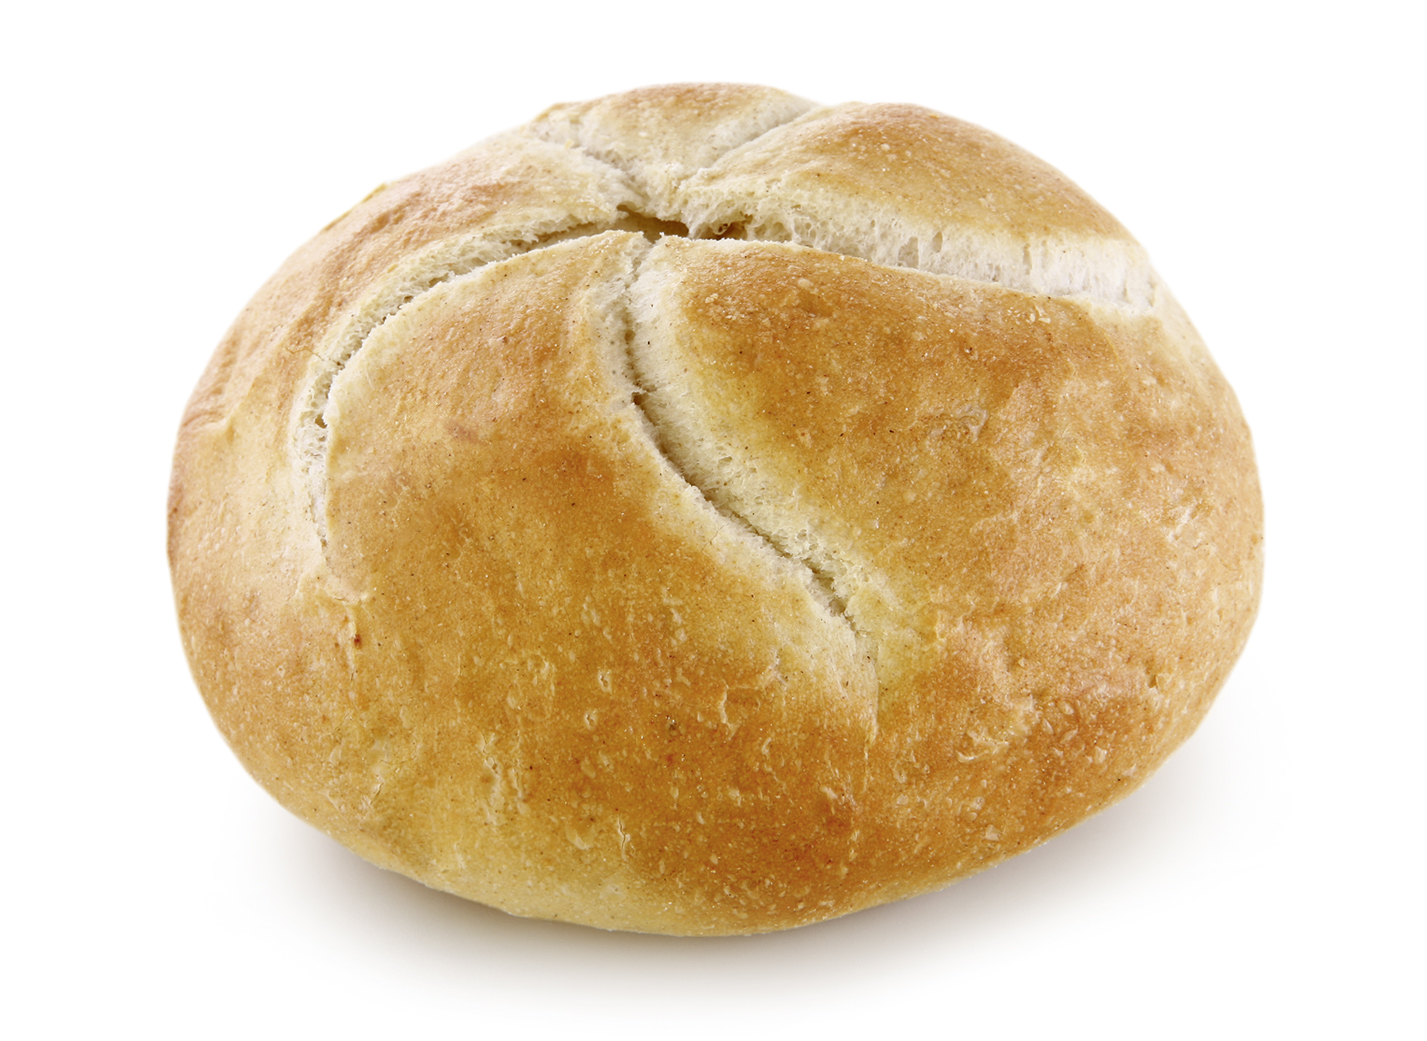 Kaiser Roll - Wheat roll round/ with typical look